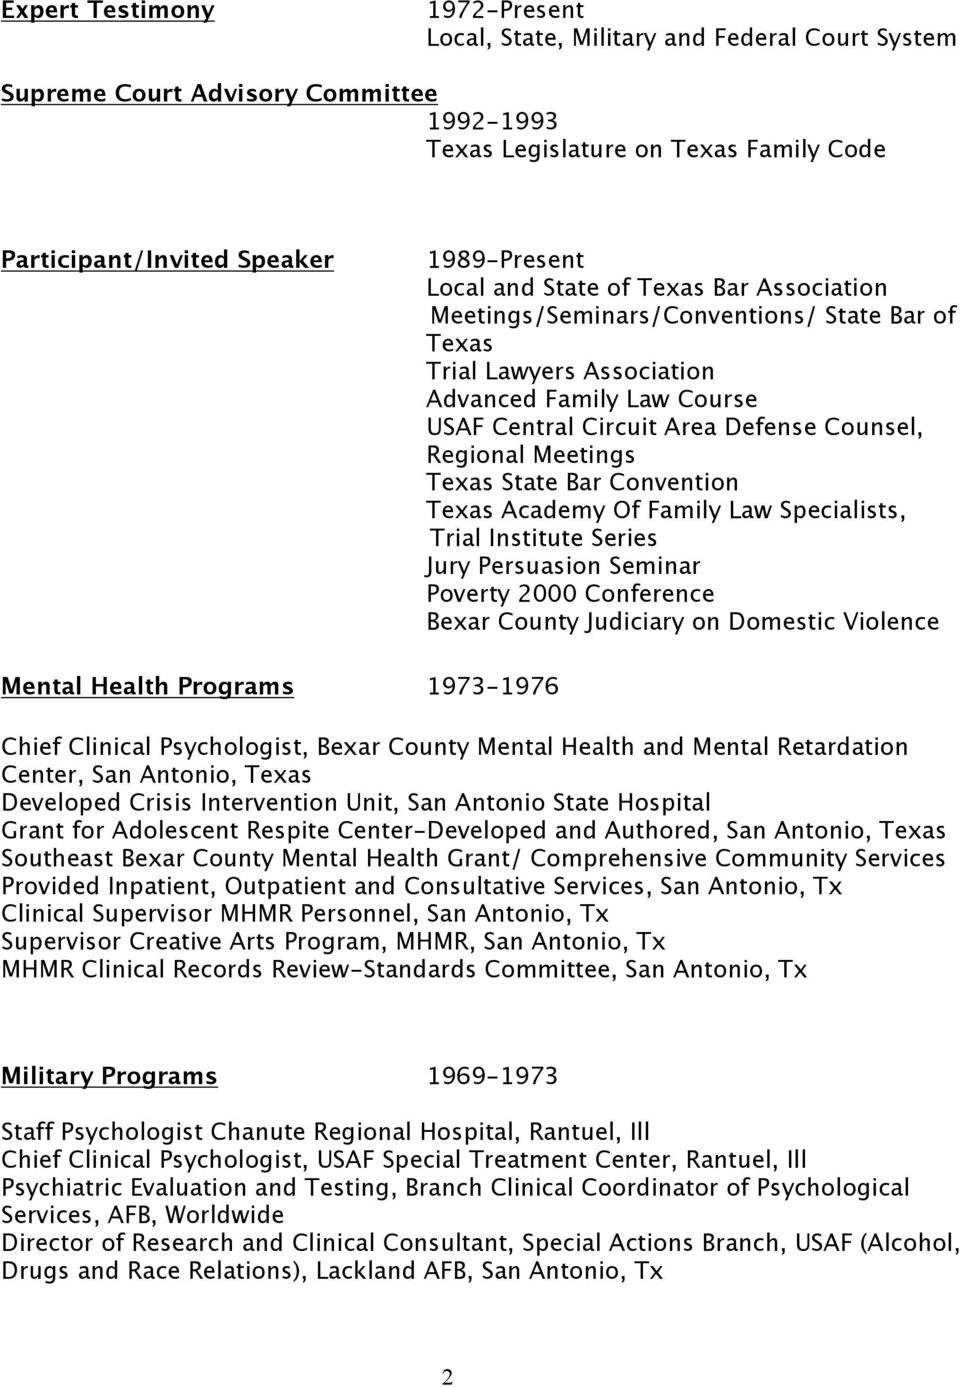 Texas State Bar Convention Texas Academy Of Family Law Specialists, Trial Institute Series Jury Persuasion Seminar Poverty 2000 Conference Bexar County Judiciary on Domestic Violence Mental Health